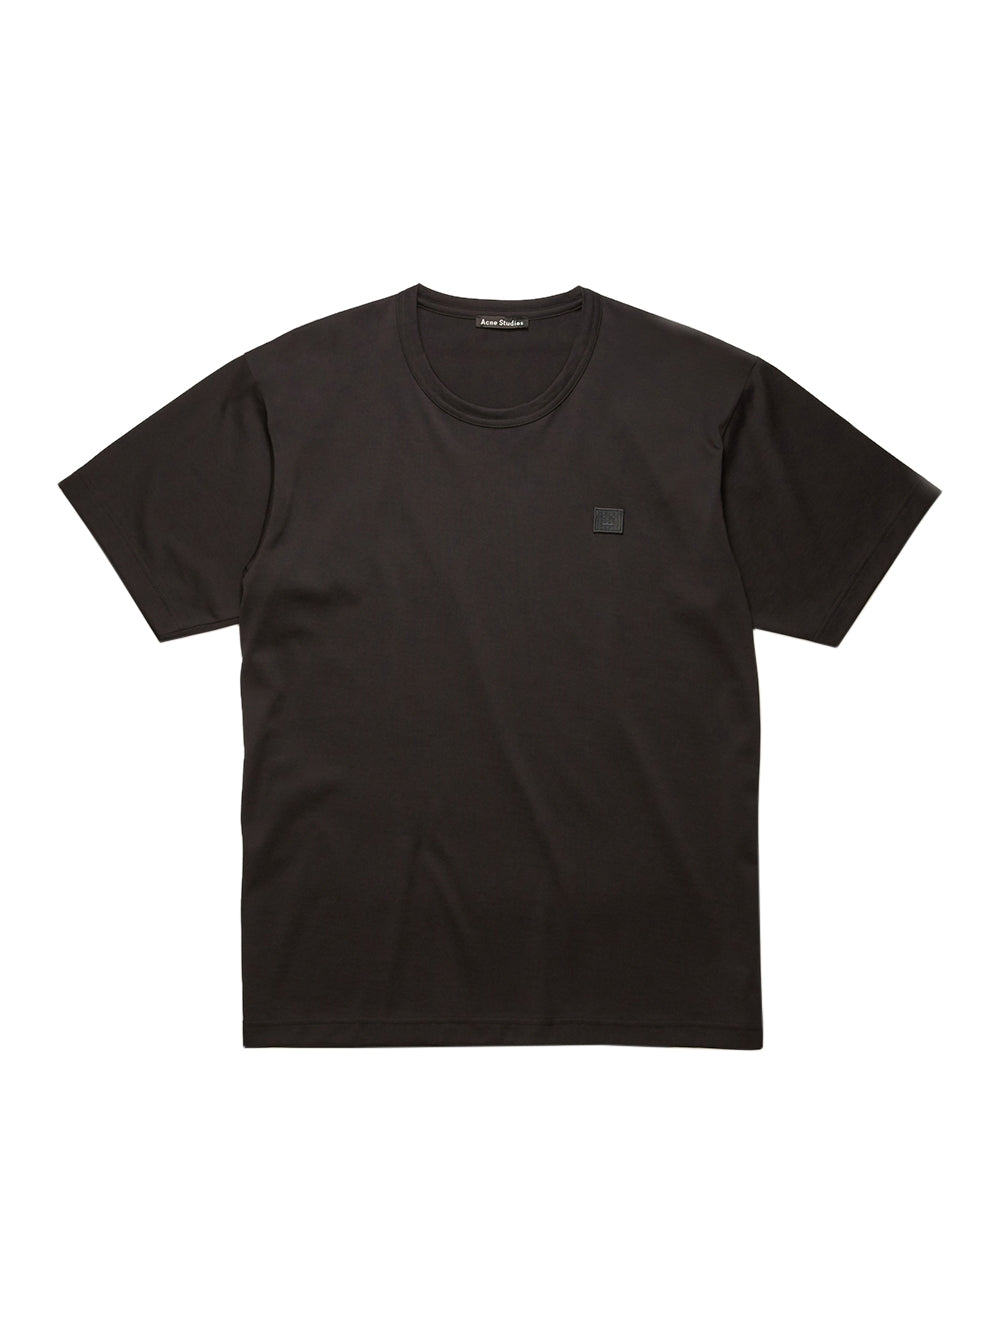 Black Classic Fit Cotton T-Shirt